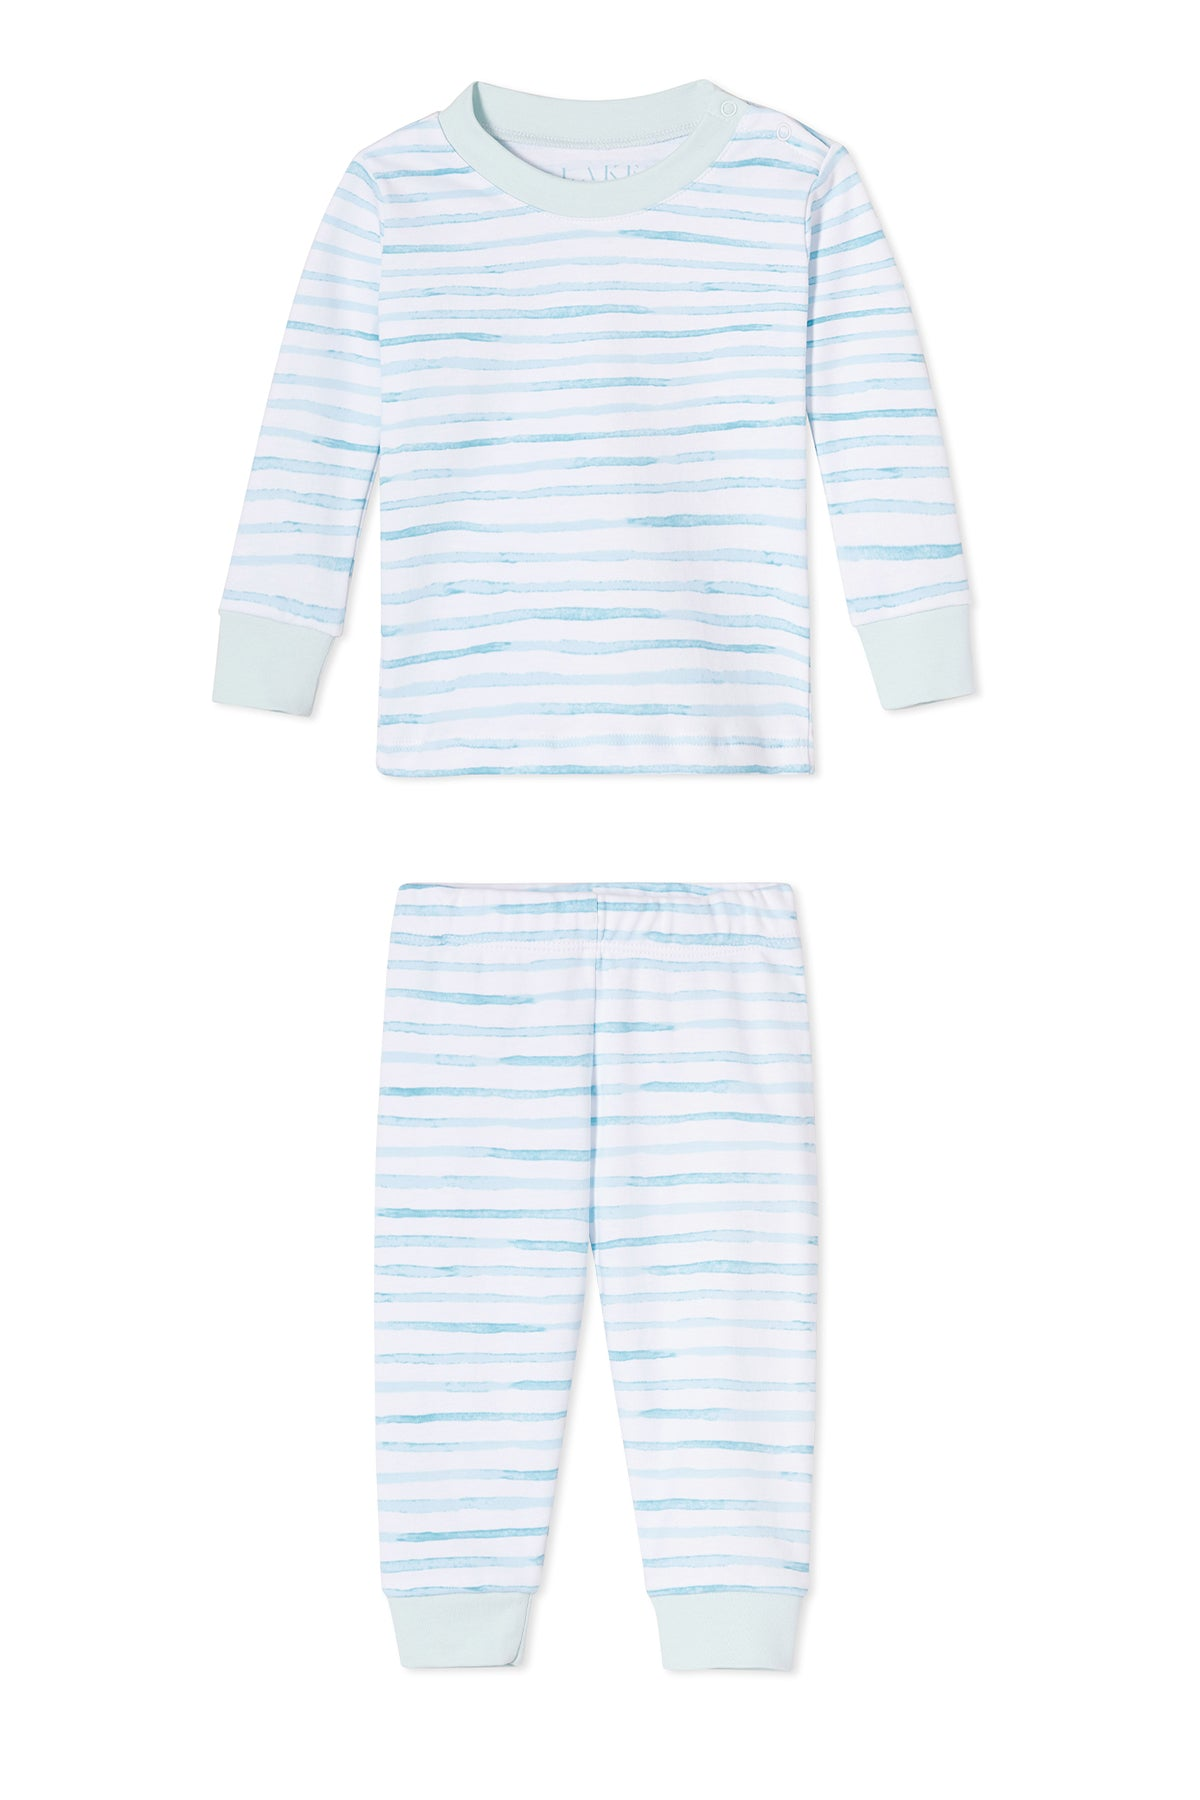 Baby Long-Long Set in Sea Breeze